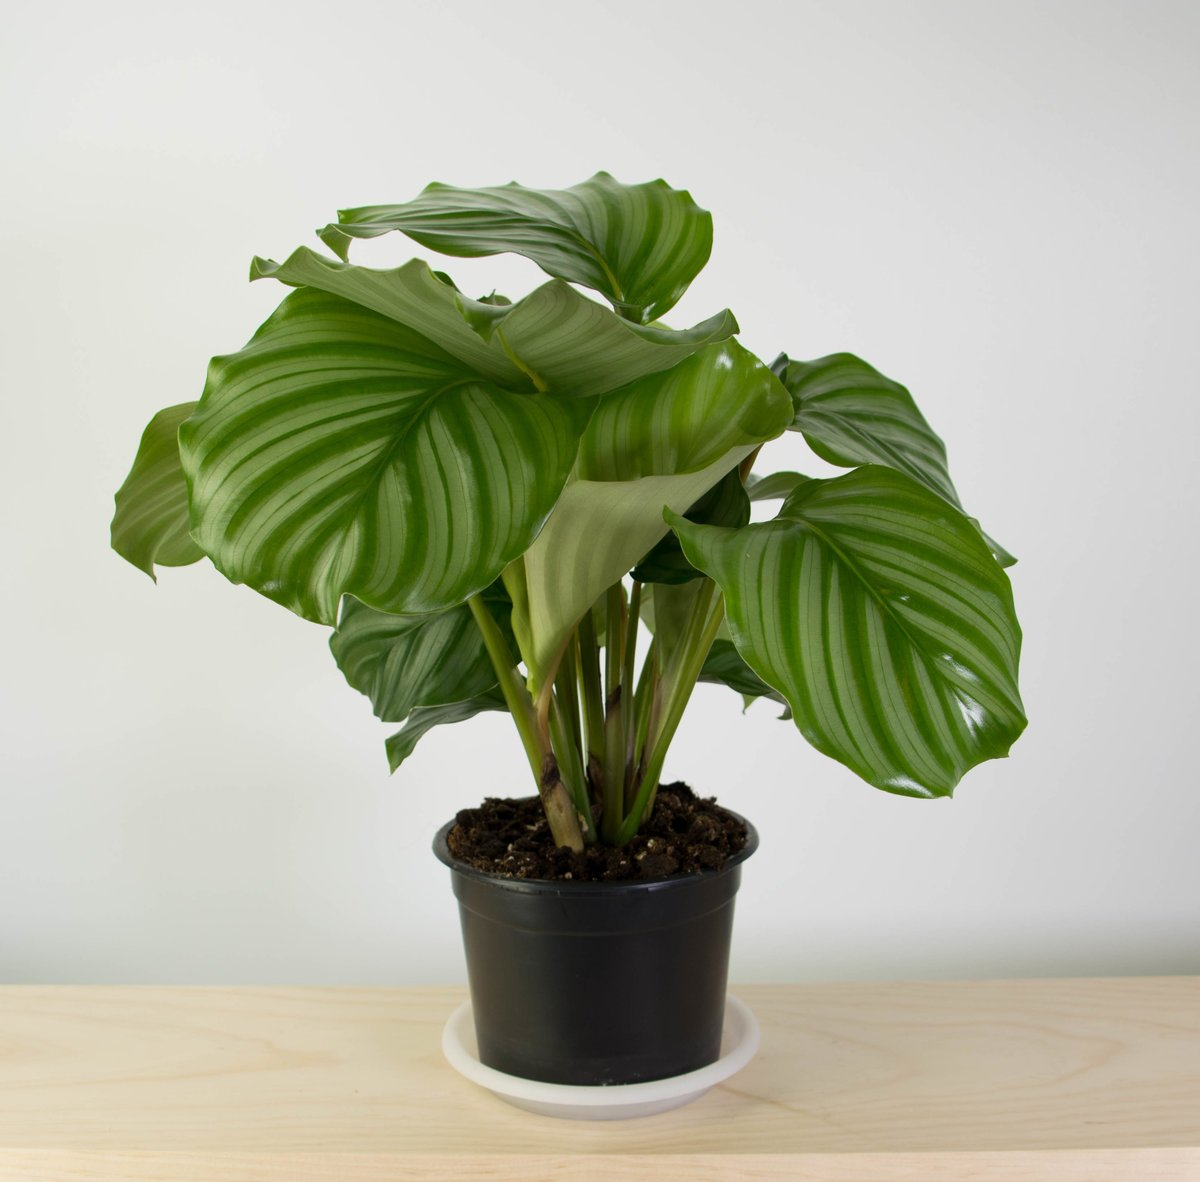 calathea orbifolia plant and pot nz. Black Bedroom Furniture Sets. Home Design Ideas